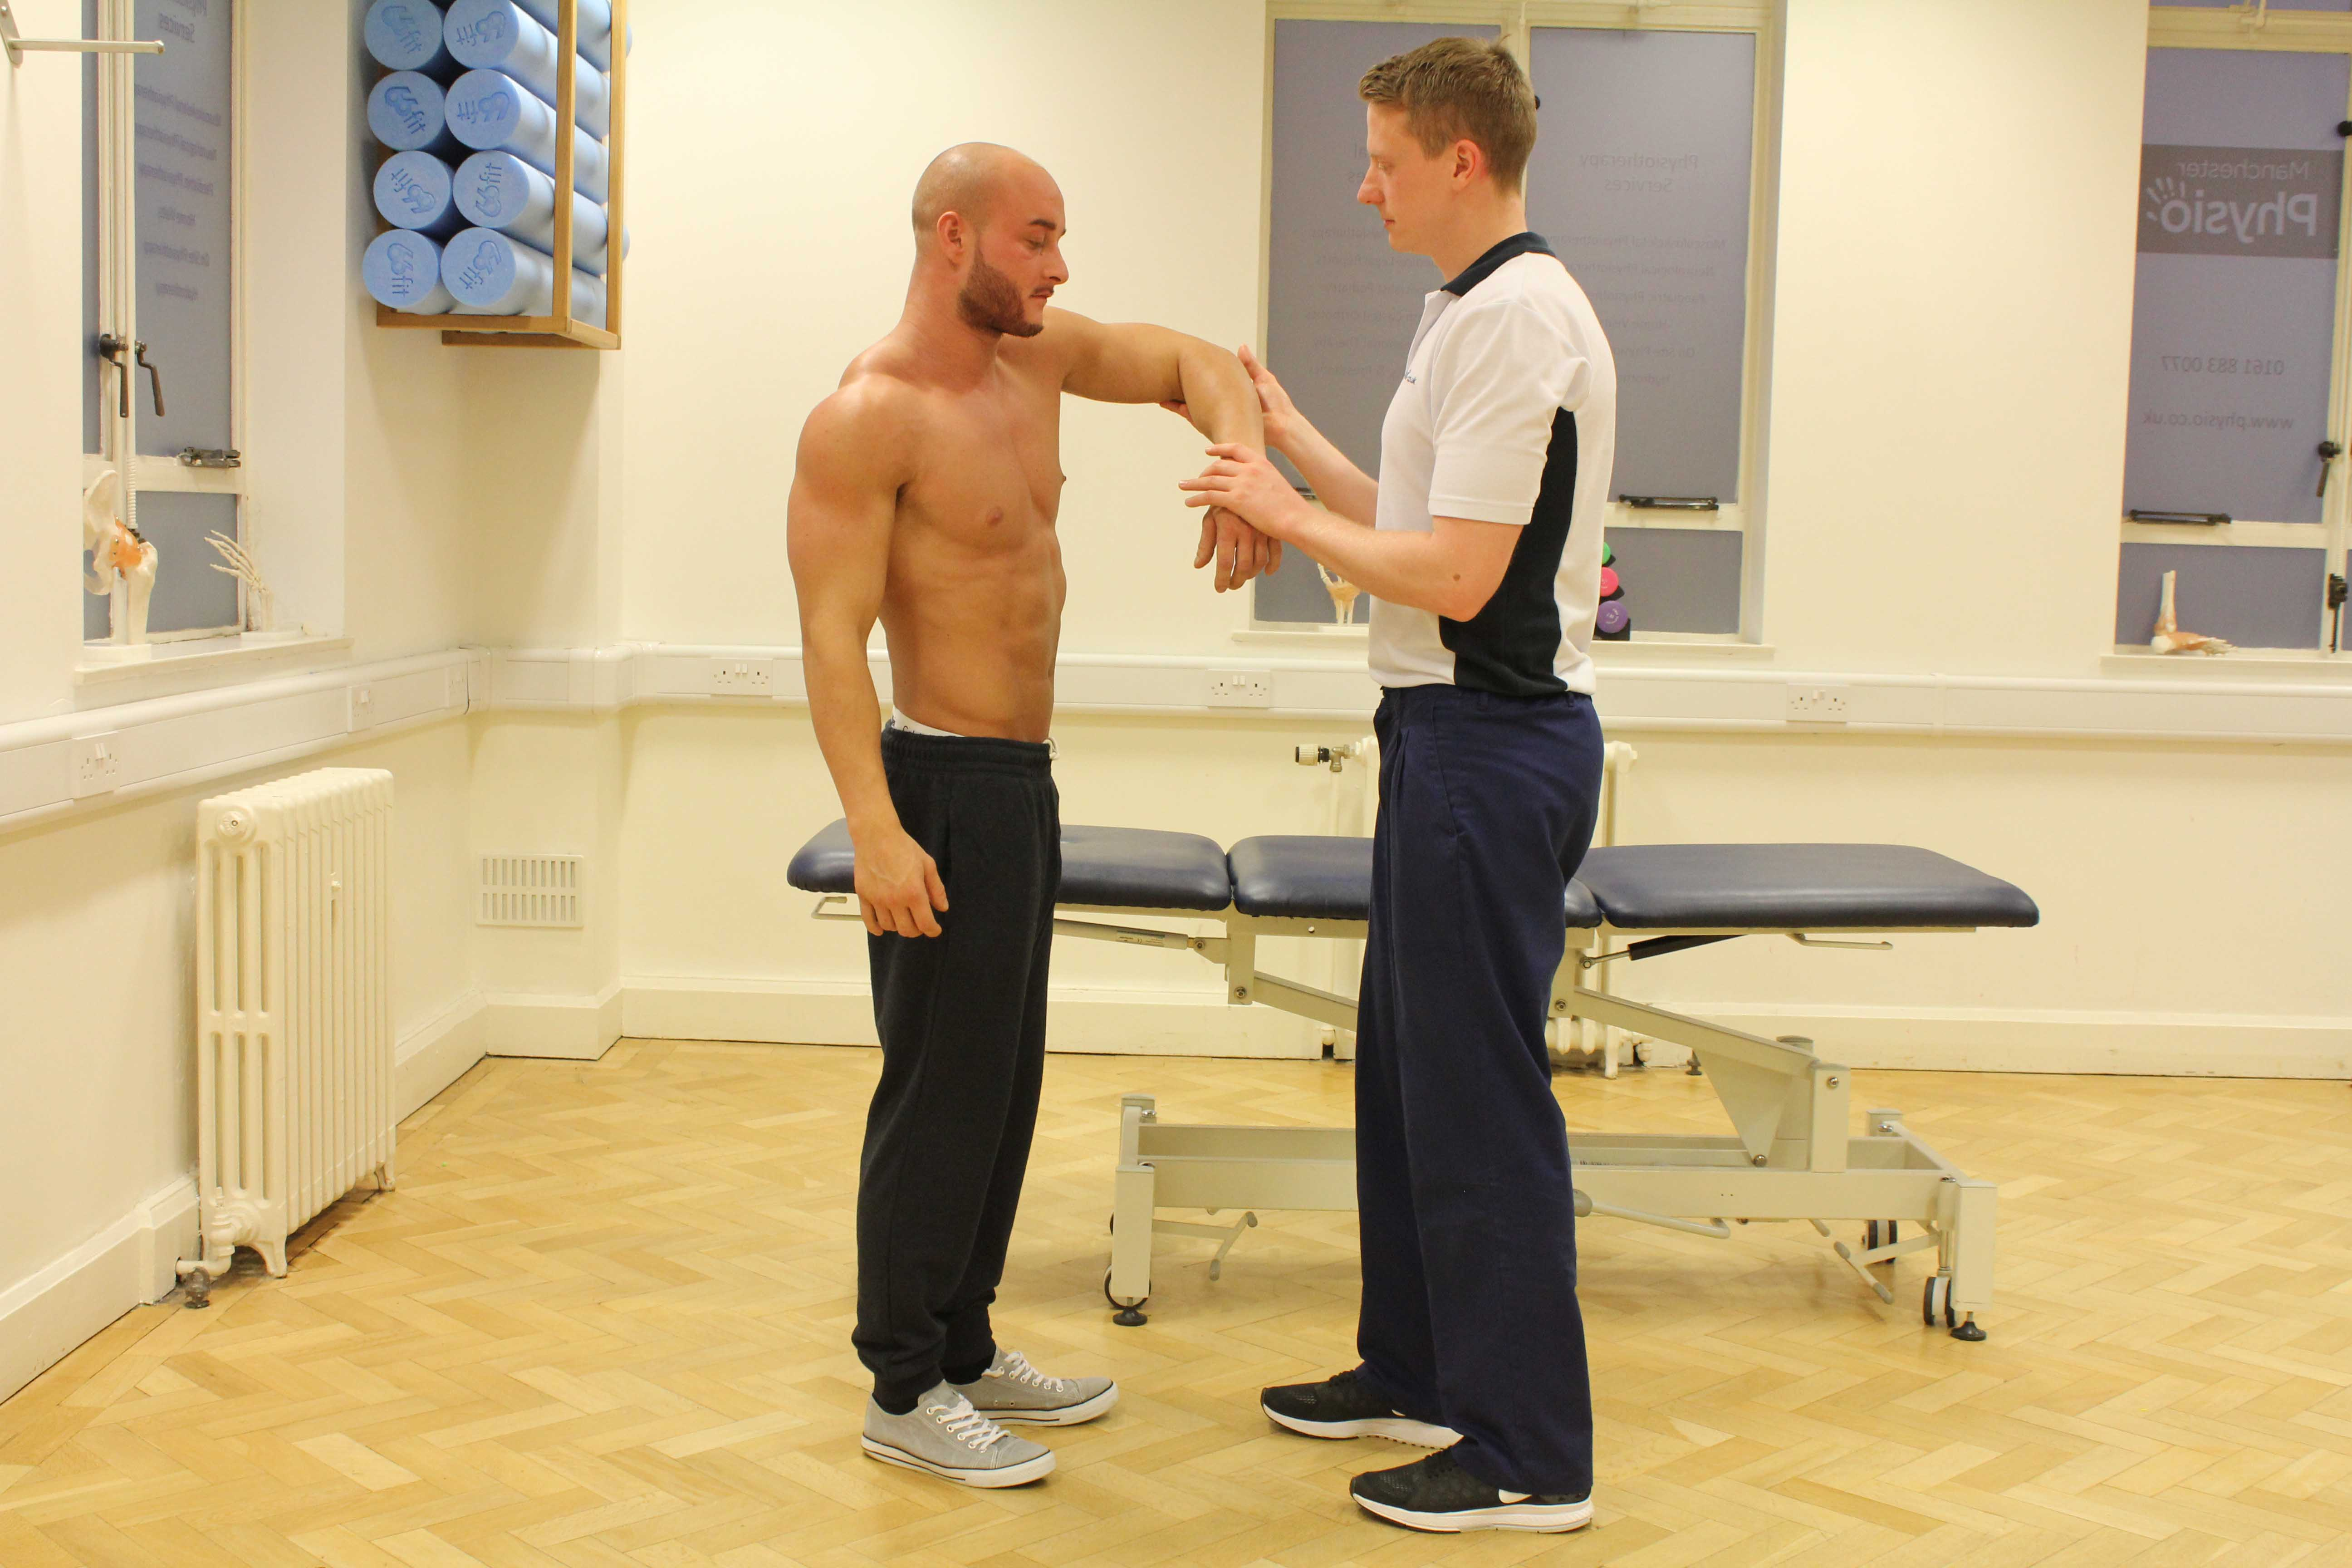 Strengthening exercises for the hip and pelvic muscles, supervised by MSK therapist